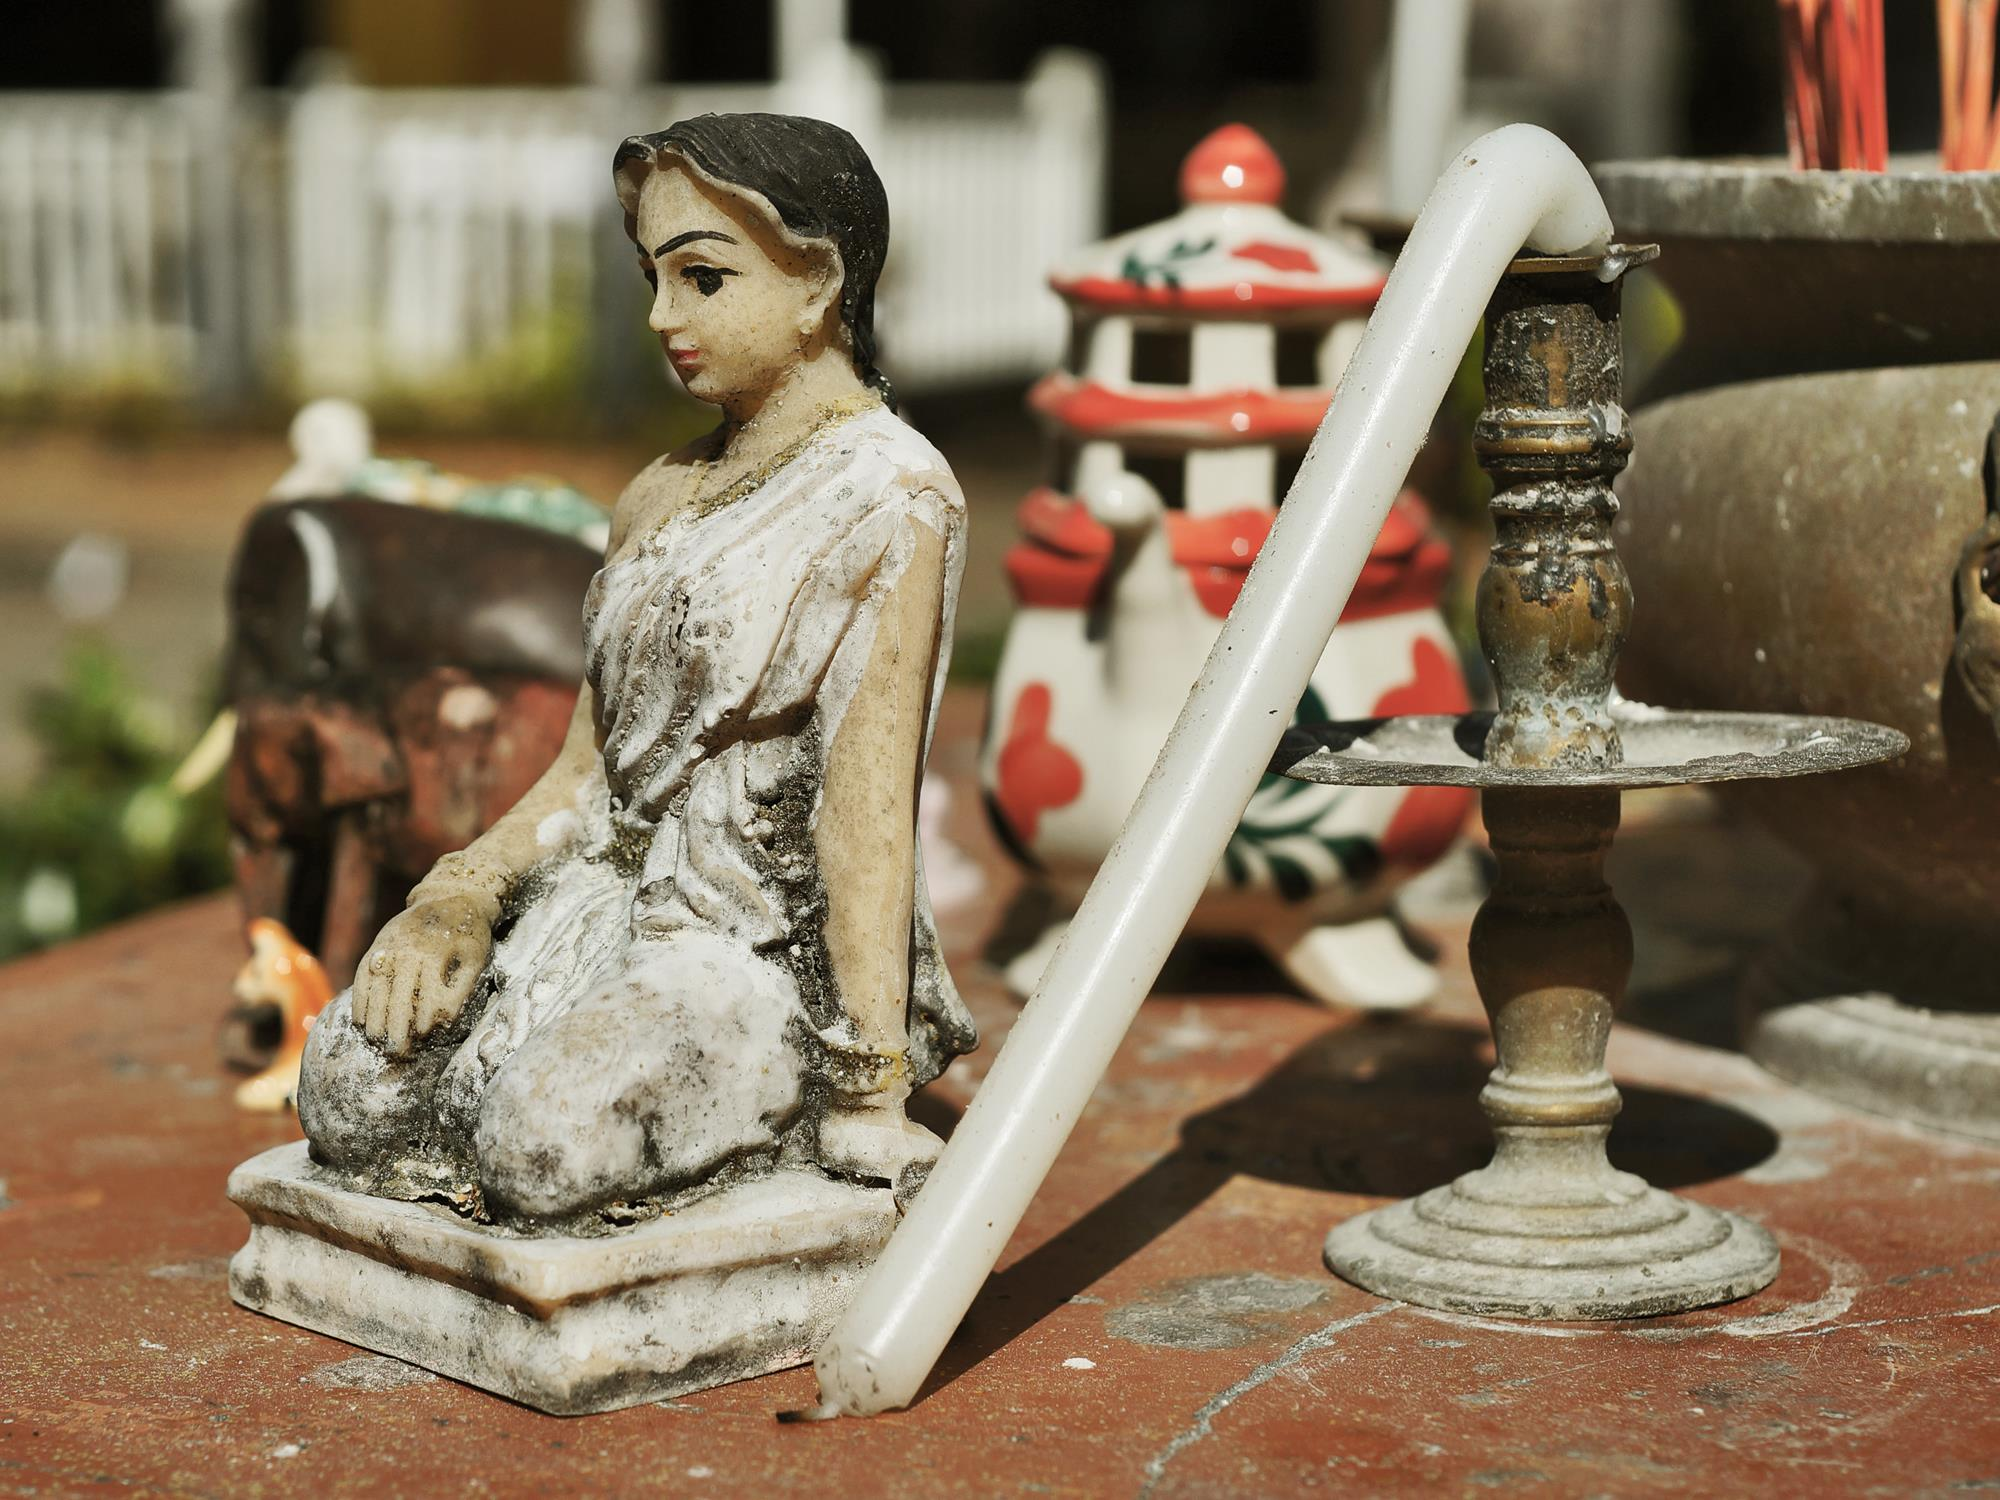 thai buddhist figurine with melted candle